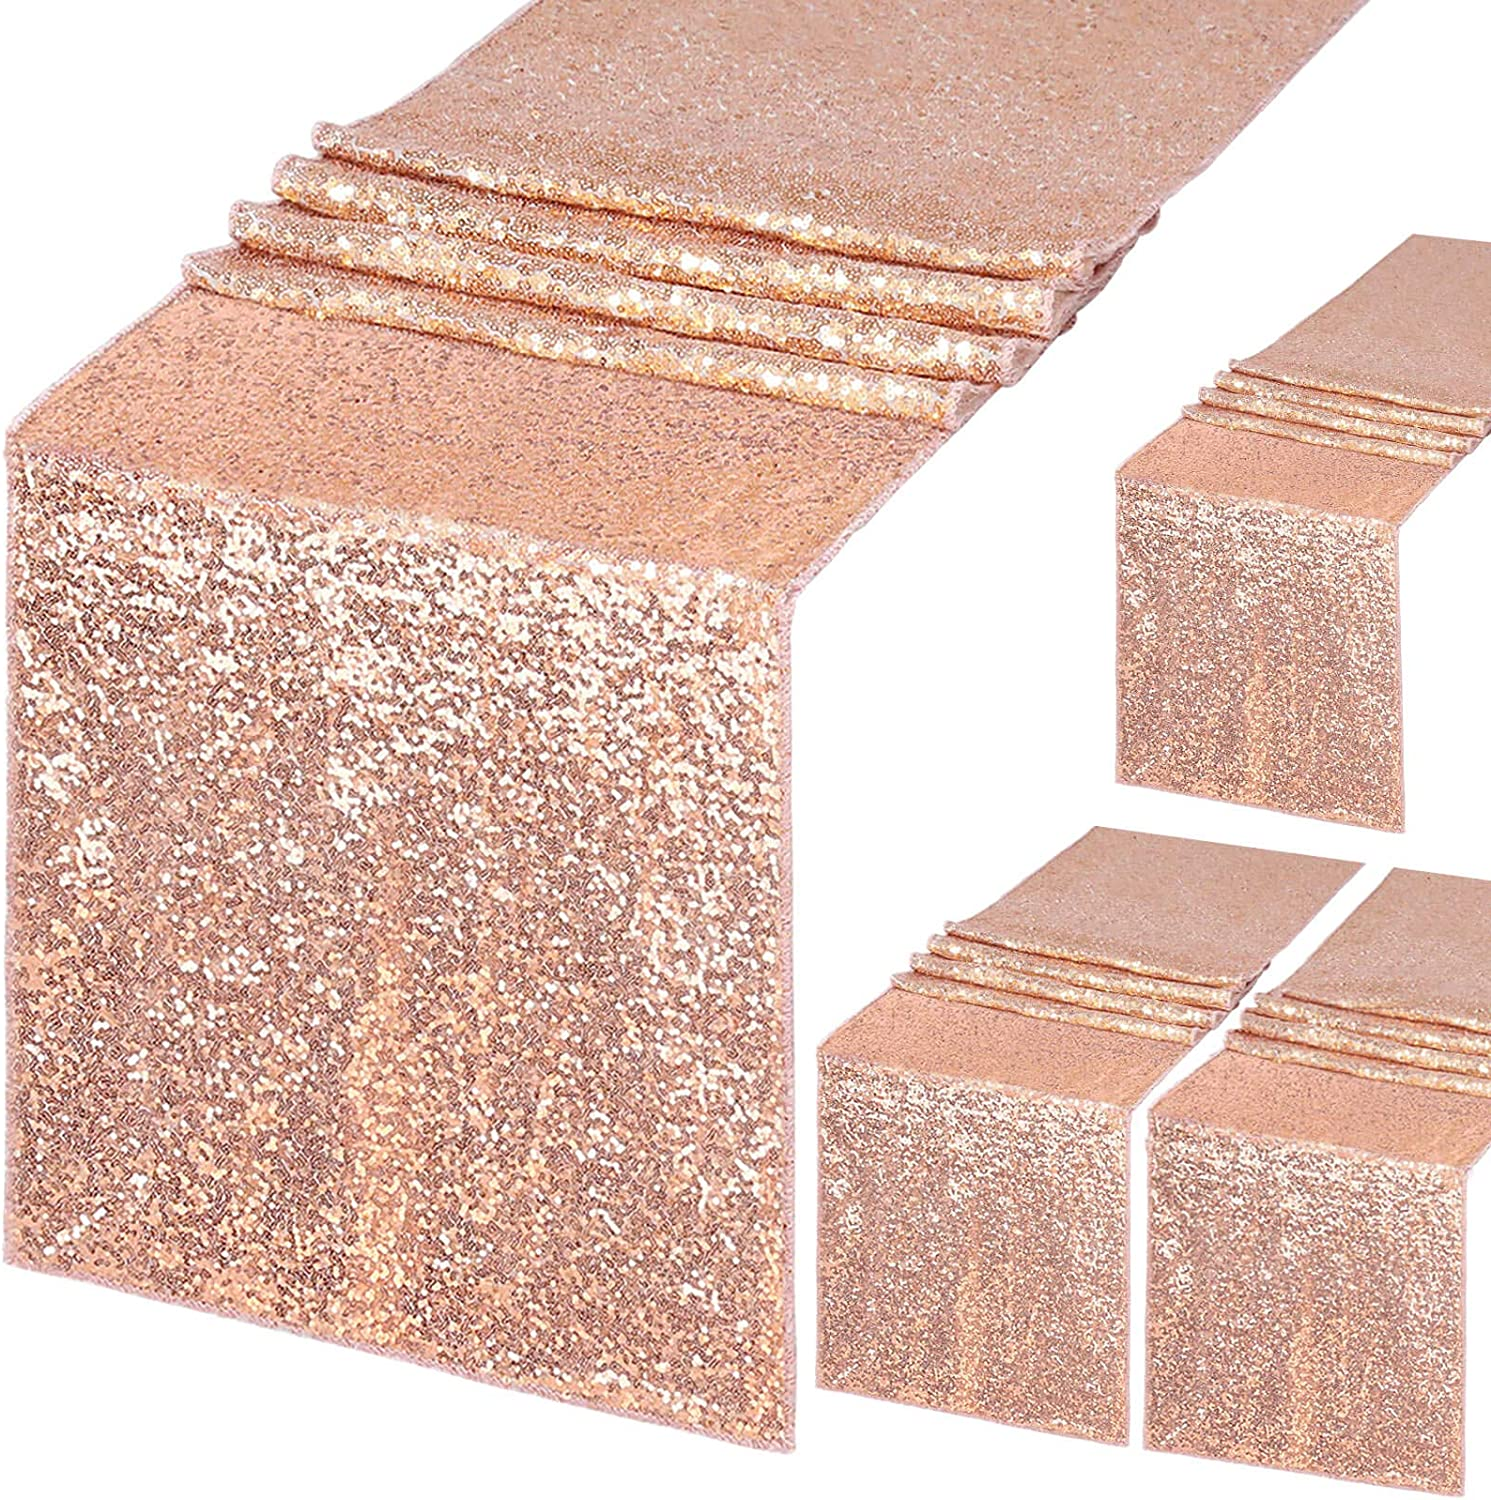 B-COOL 4 Pack Sequin Table Runner 12x72 Inch Wedding Rose Gold Runner for Rectangle Tables Sequin Glitter Party Decorations